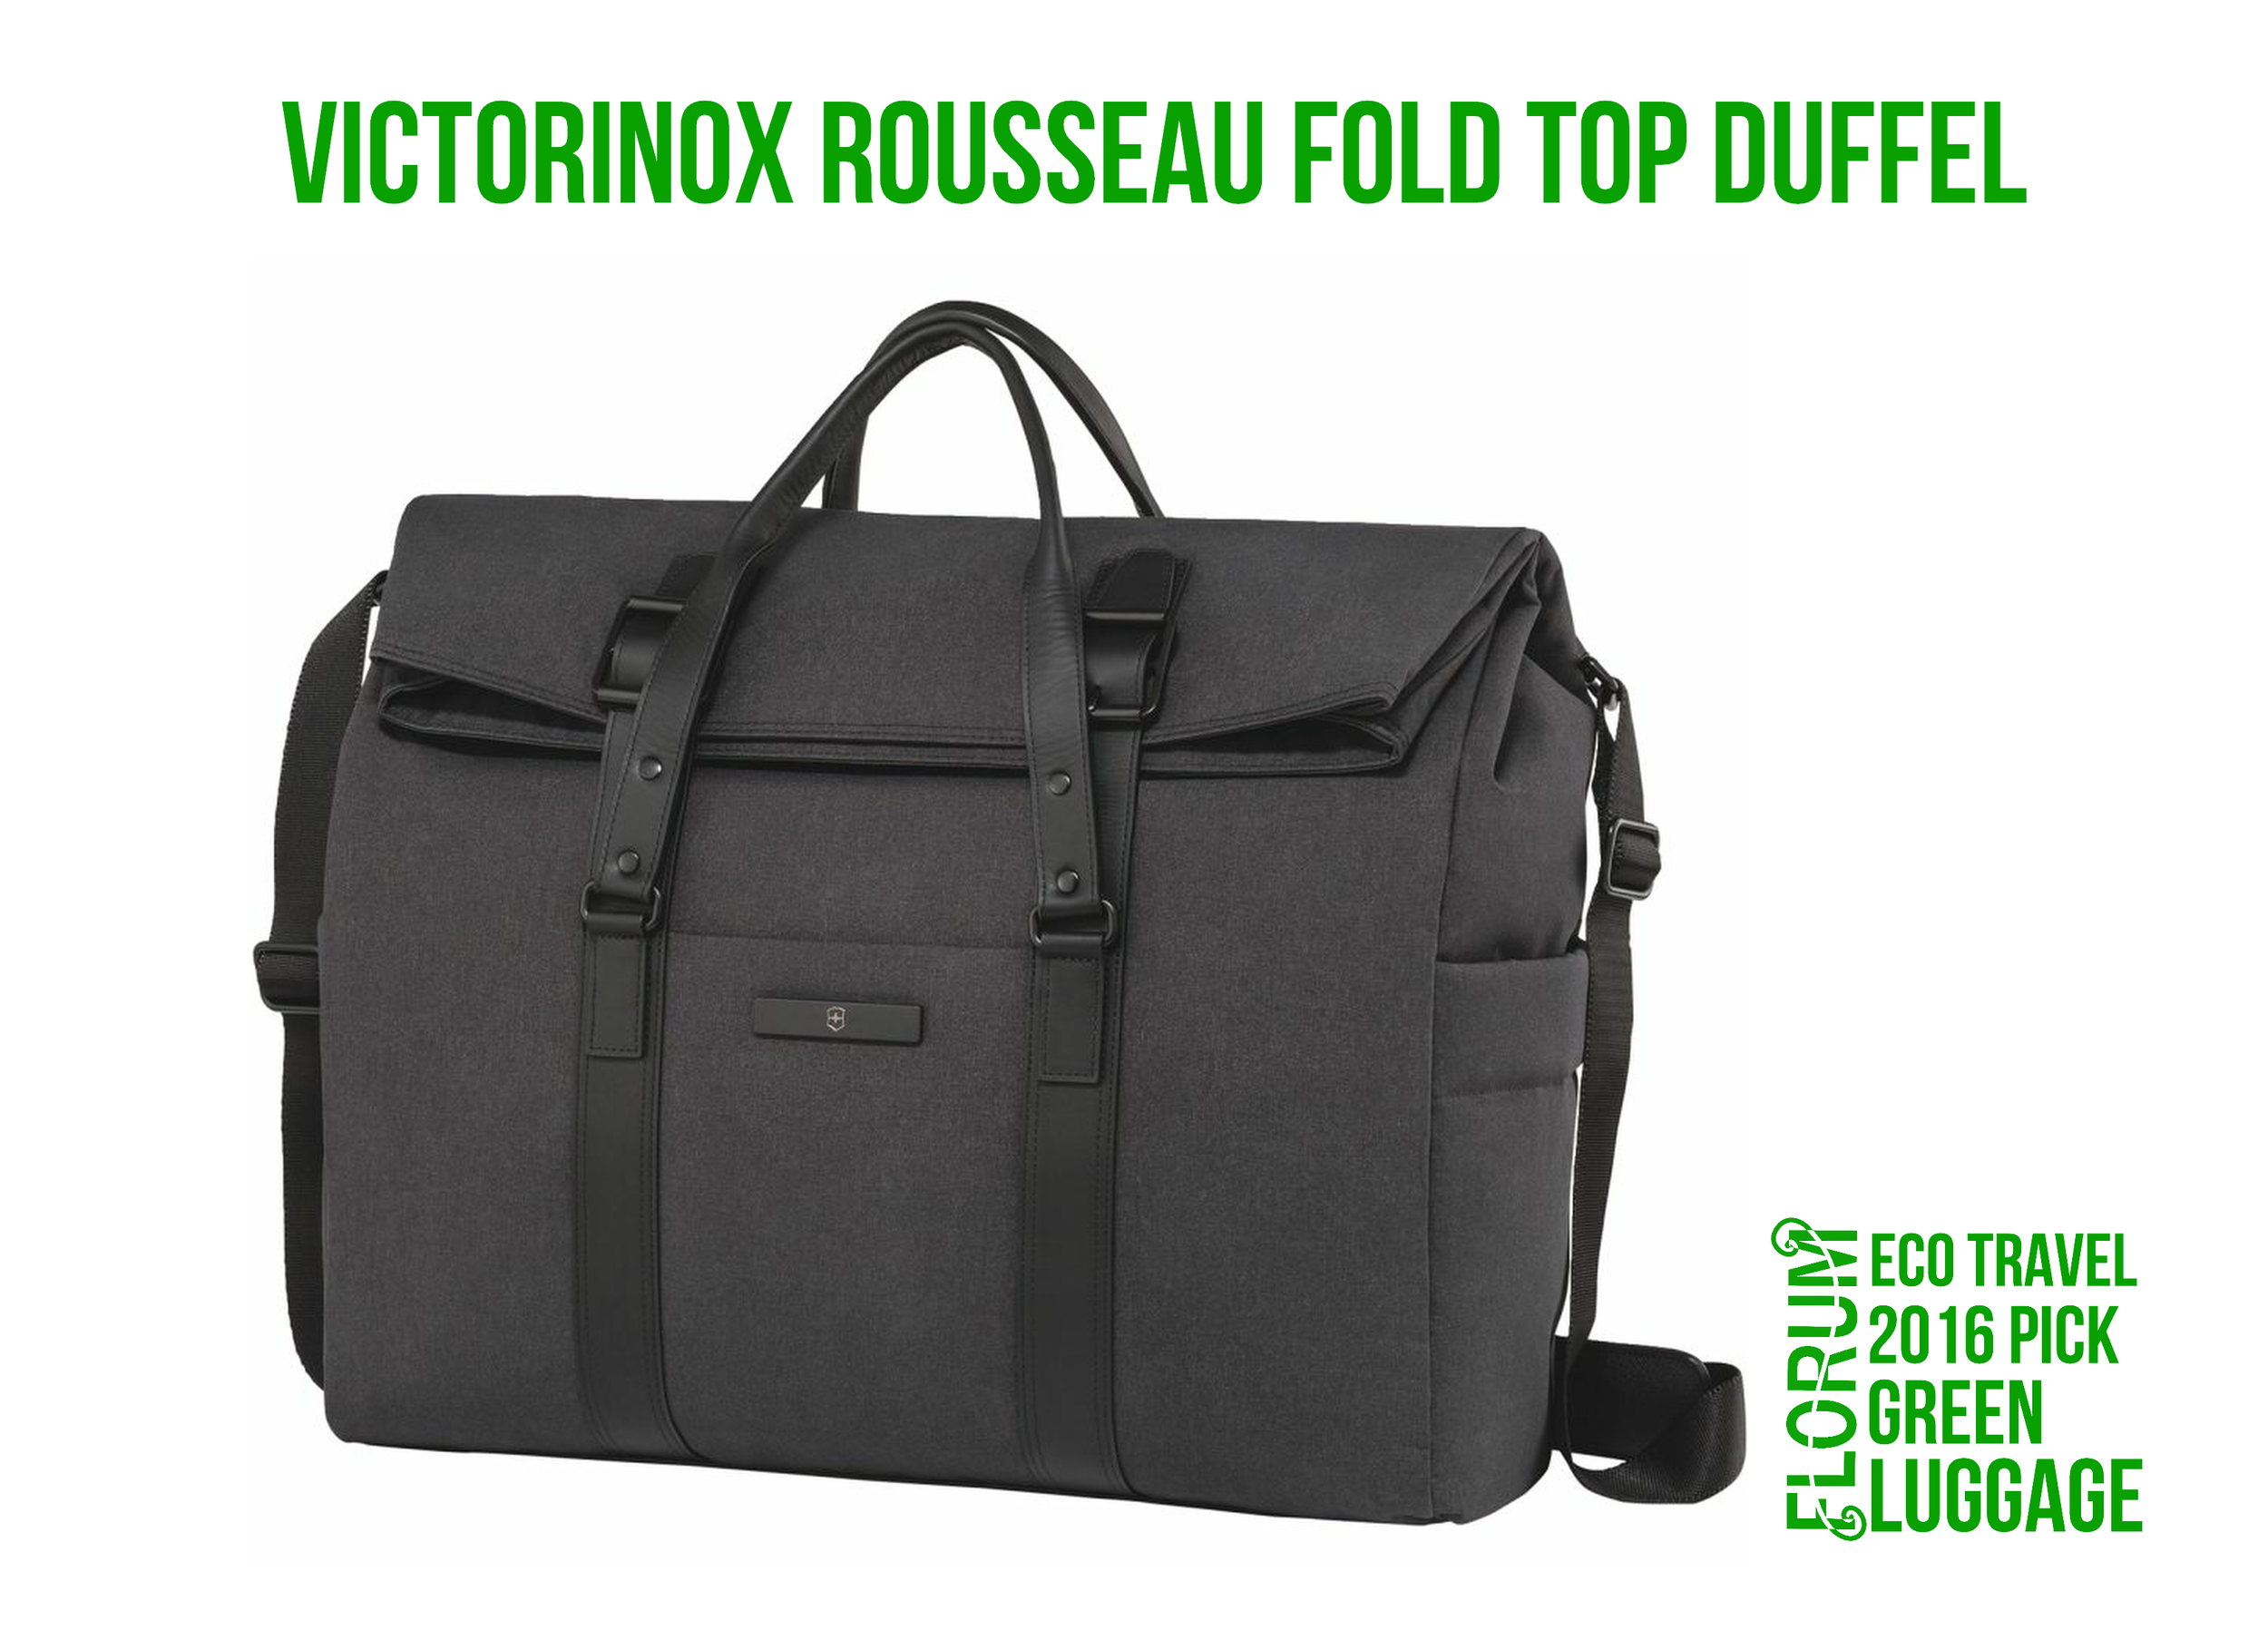 Florum Eco Travel 2016 Green Luggage Pick - Victorinox Duffle Bag Earth Friendly Fabric- by Noelle Lynne.png